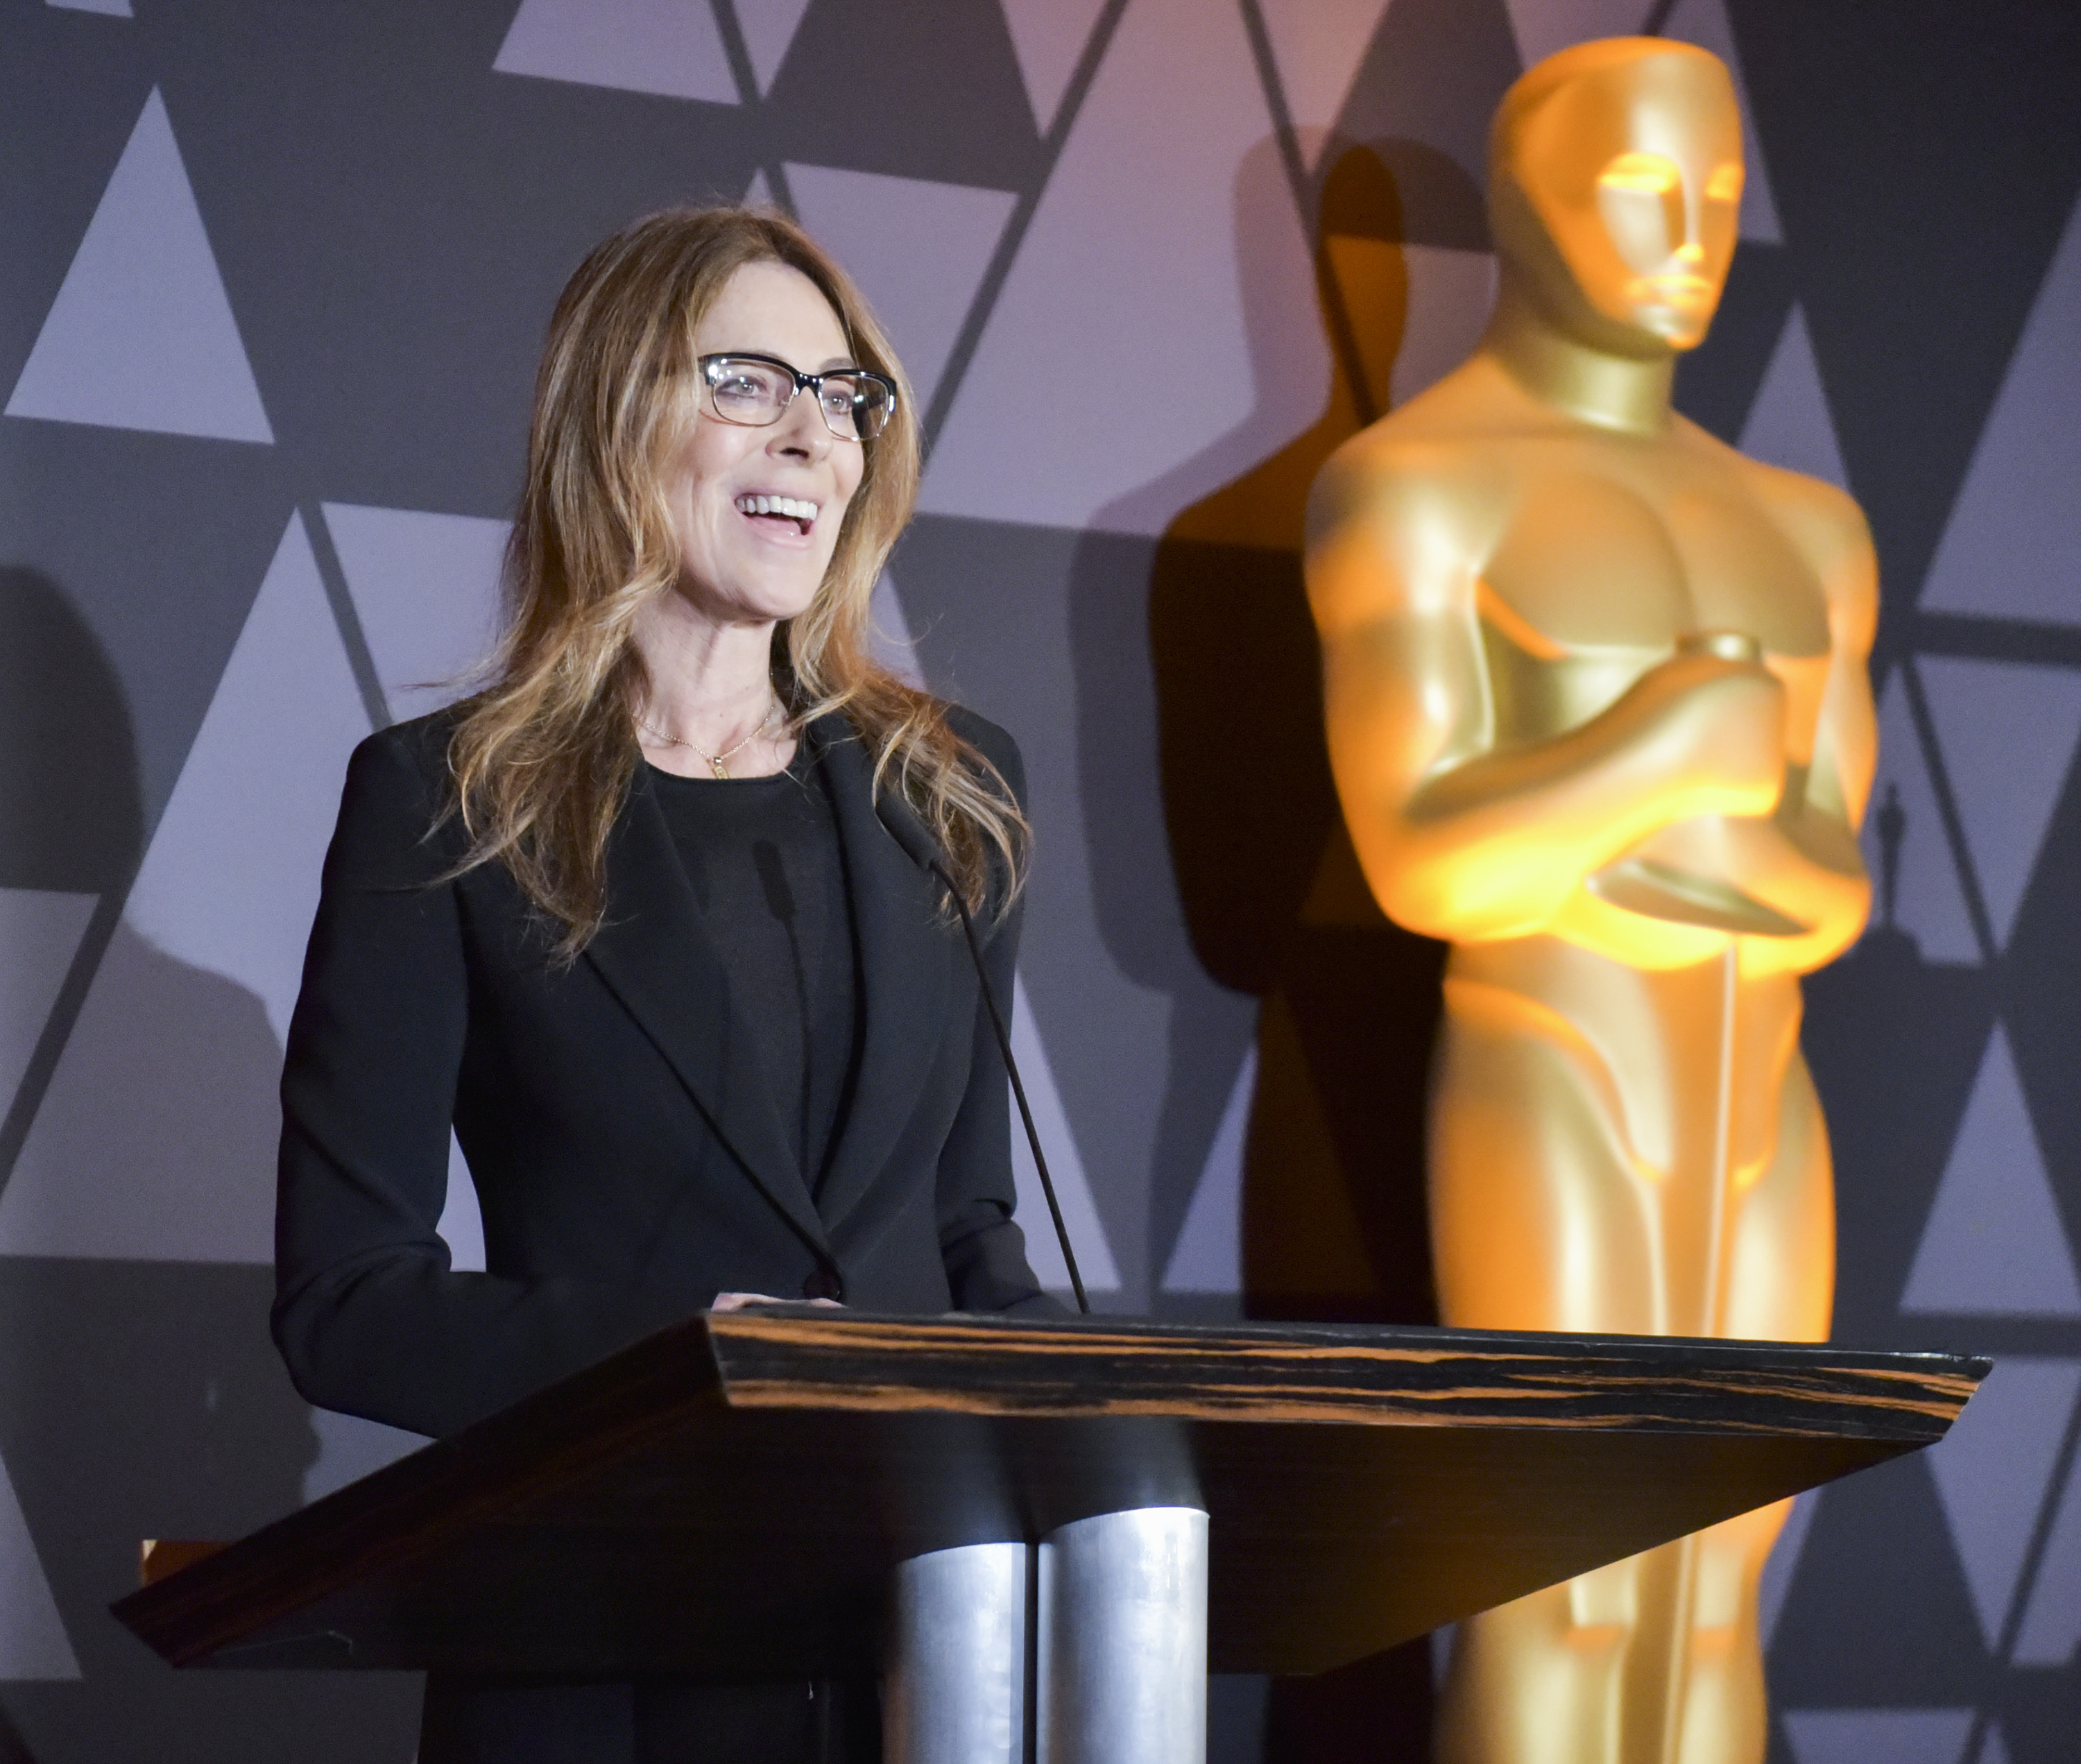 Kathryn Bigelow speaks onstage at The Oscars Foreign Language Film Award Directors Reception at the Academy of Motion Picture Arts and Sciences on March 2, 2018, in Beverly Hills, California. (Getty Images)